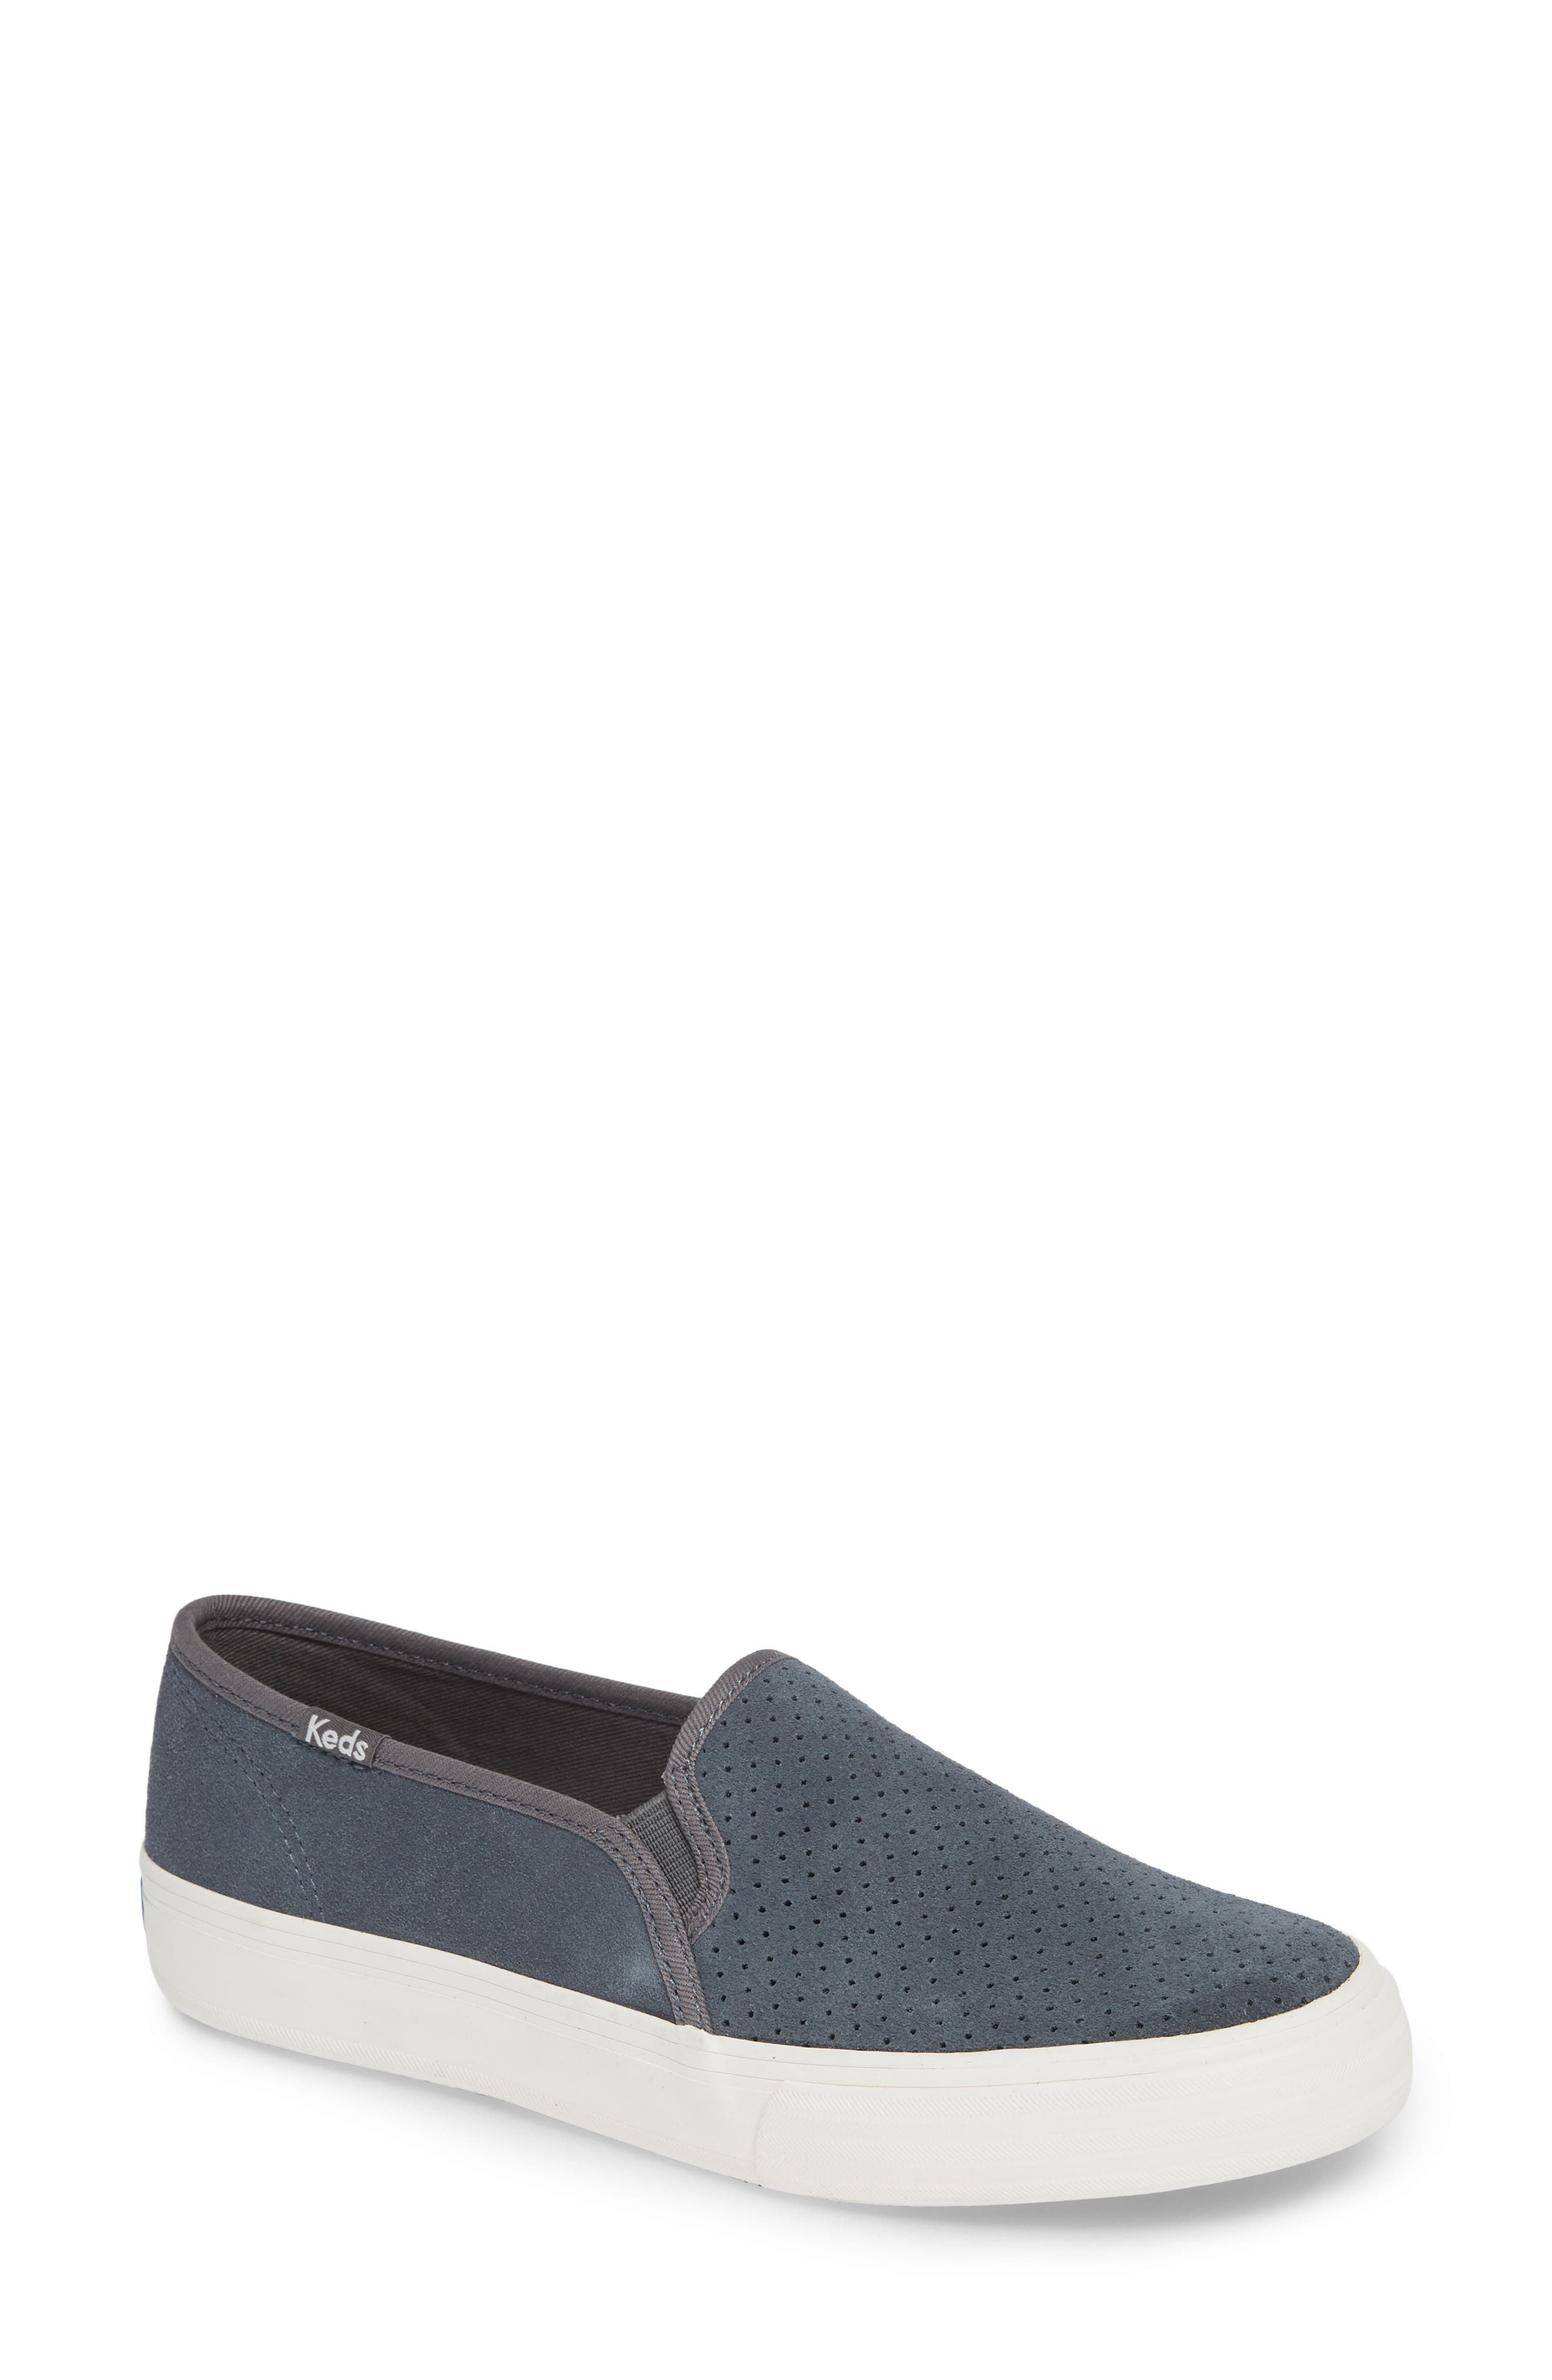 Keds Double Decker Perforated Slip-On Sneaker, Blue